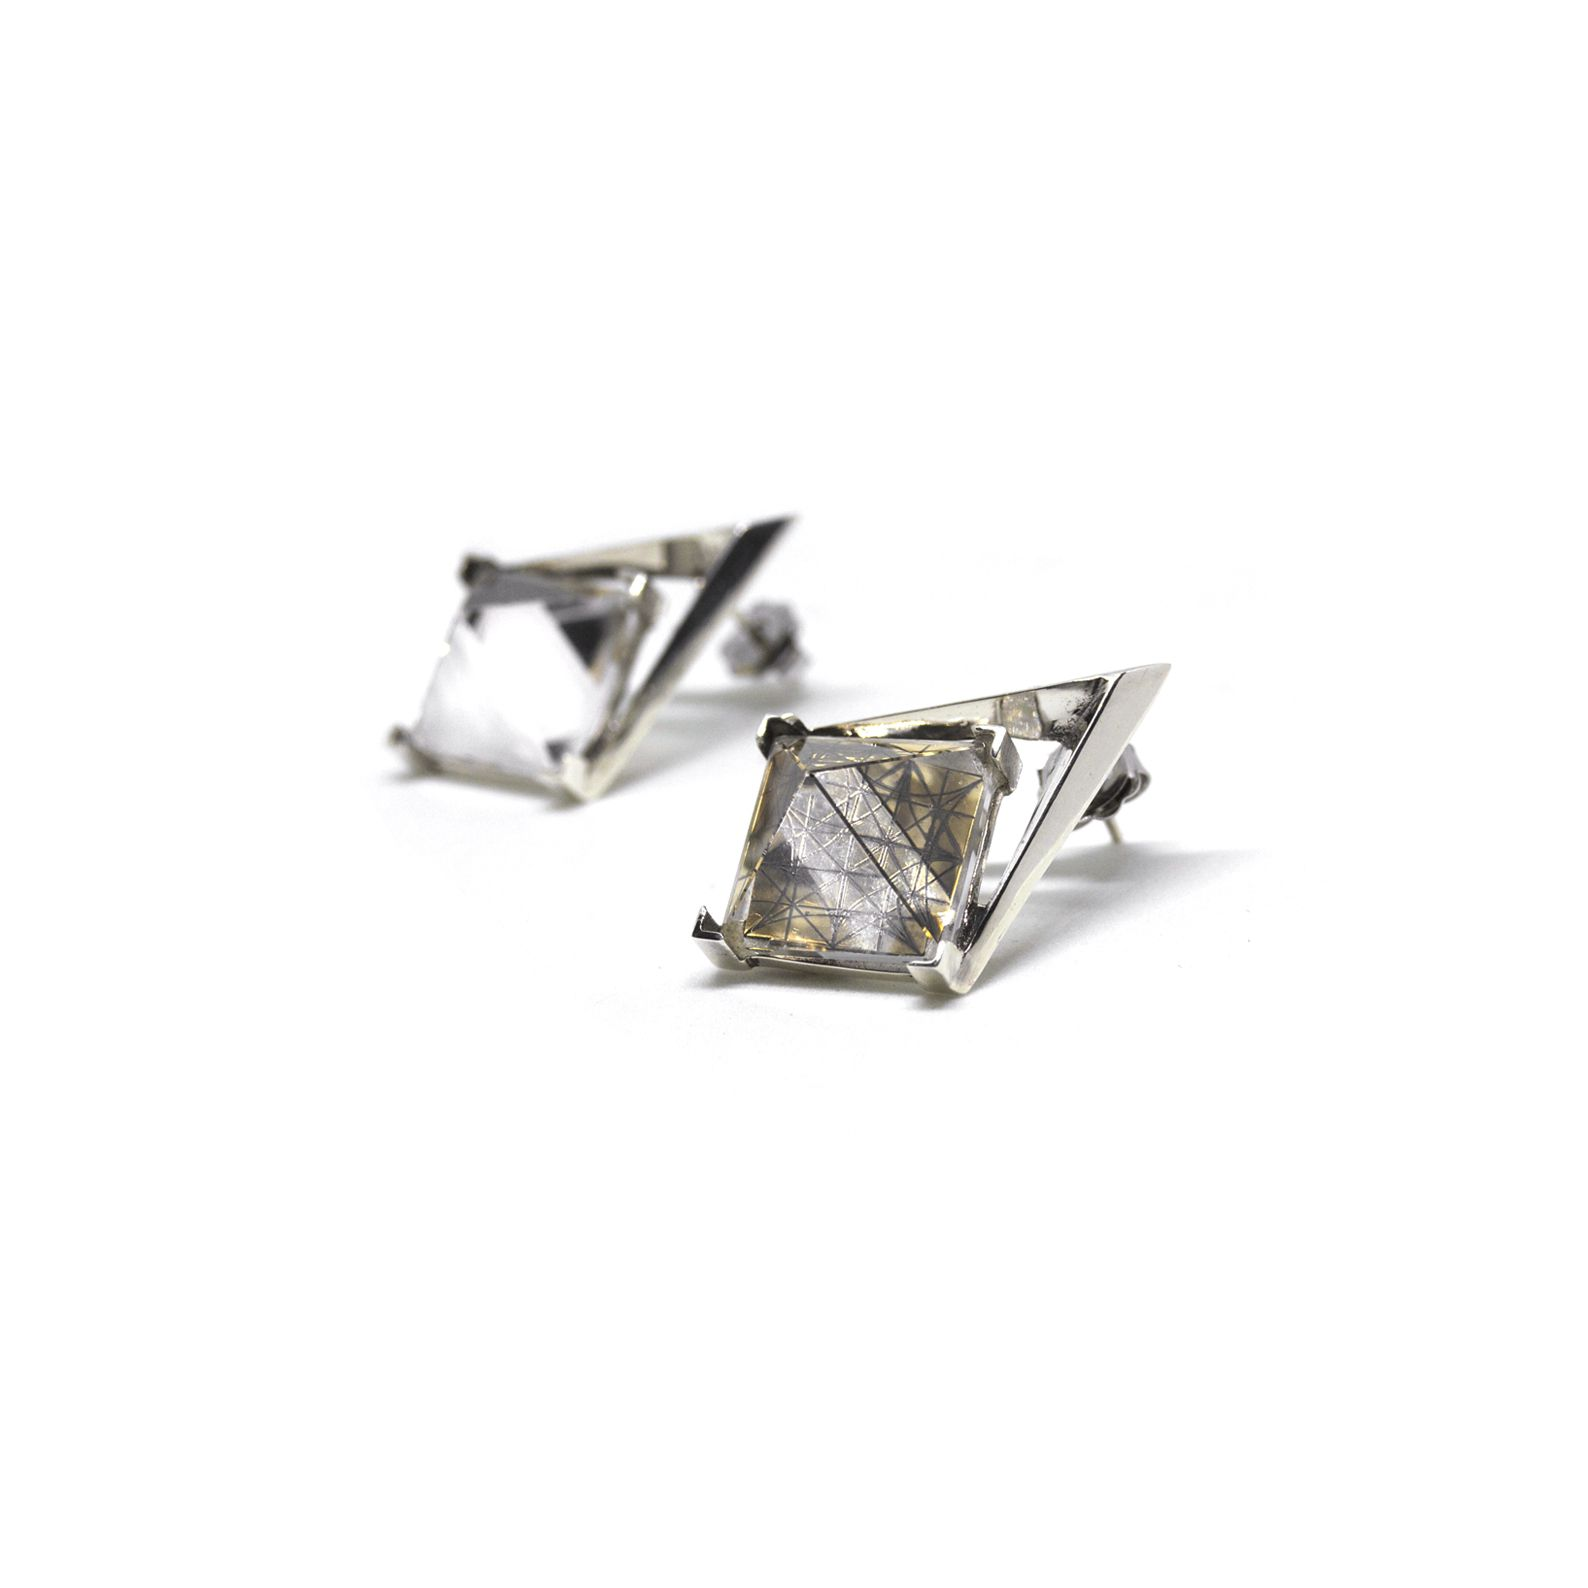 'Entropia' earrings Earrings in silver with pyramid